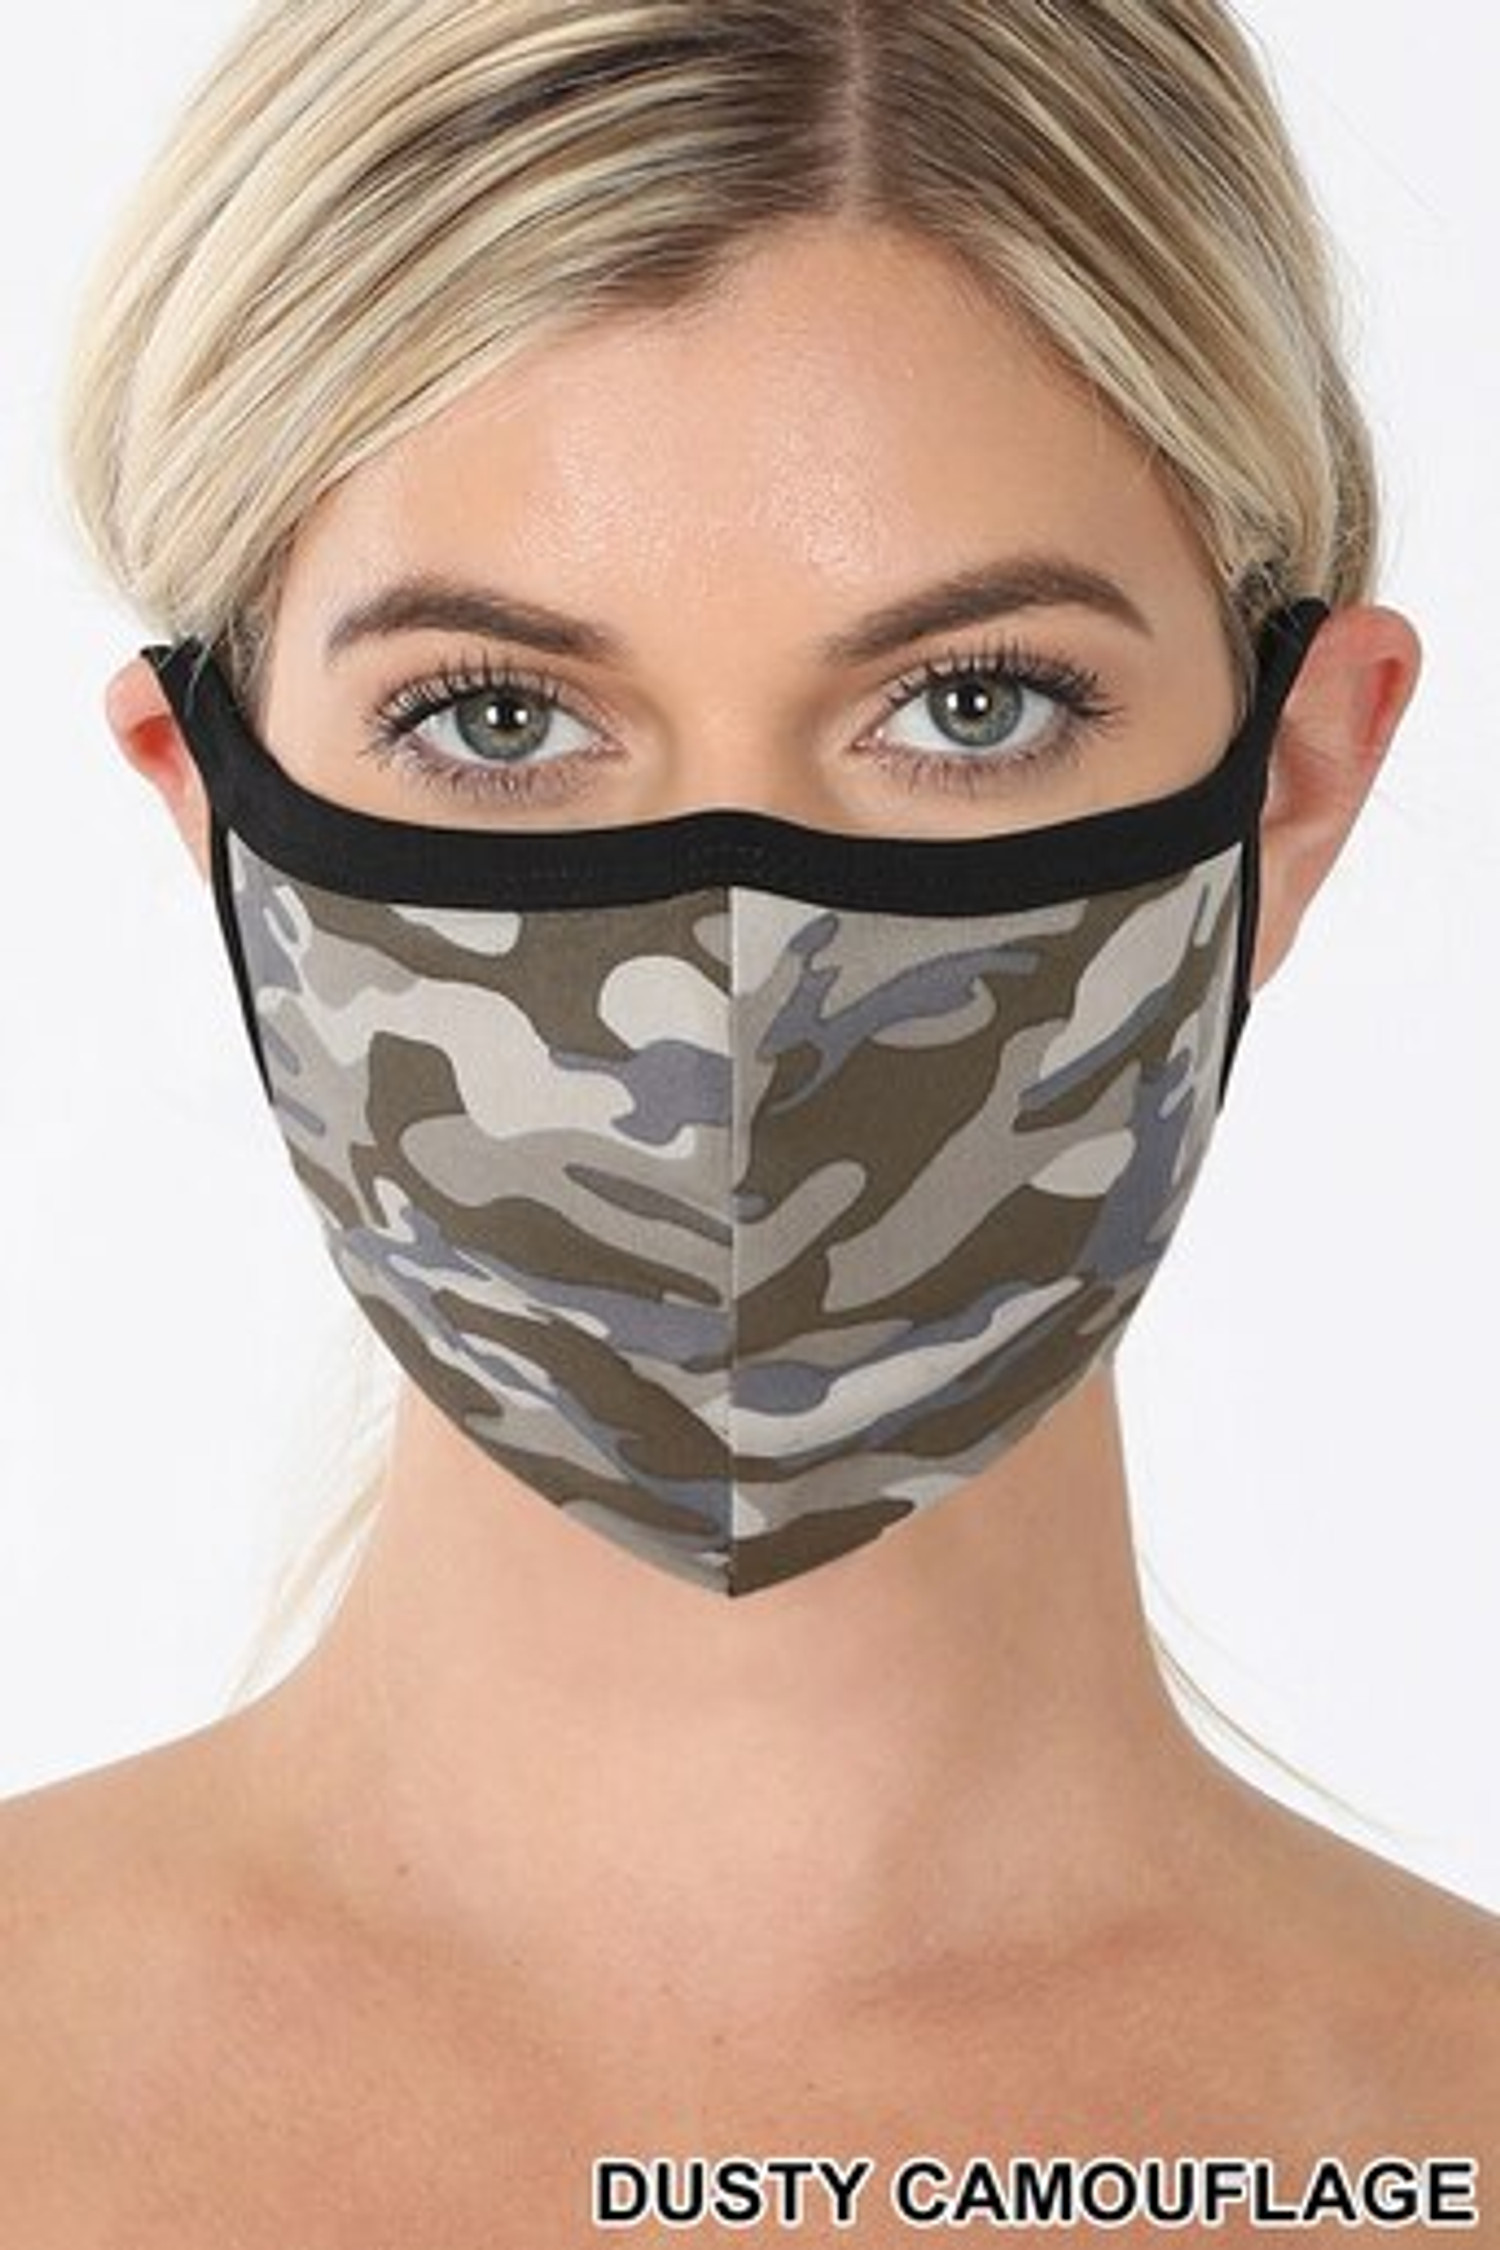 Dusty Camouflage Face Mask - Imported